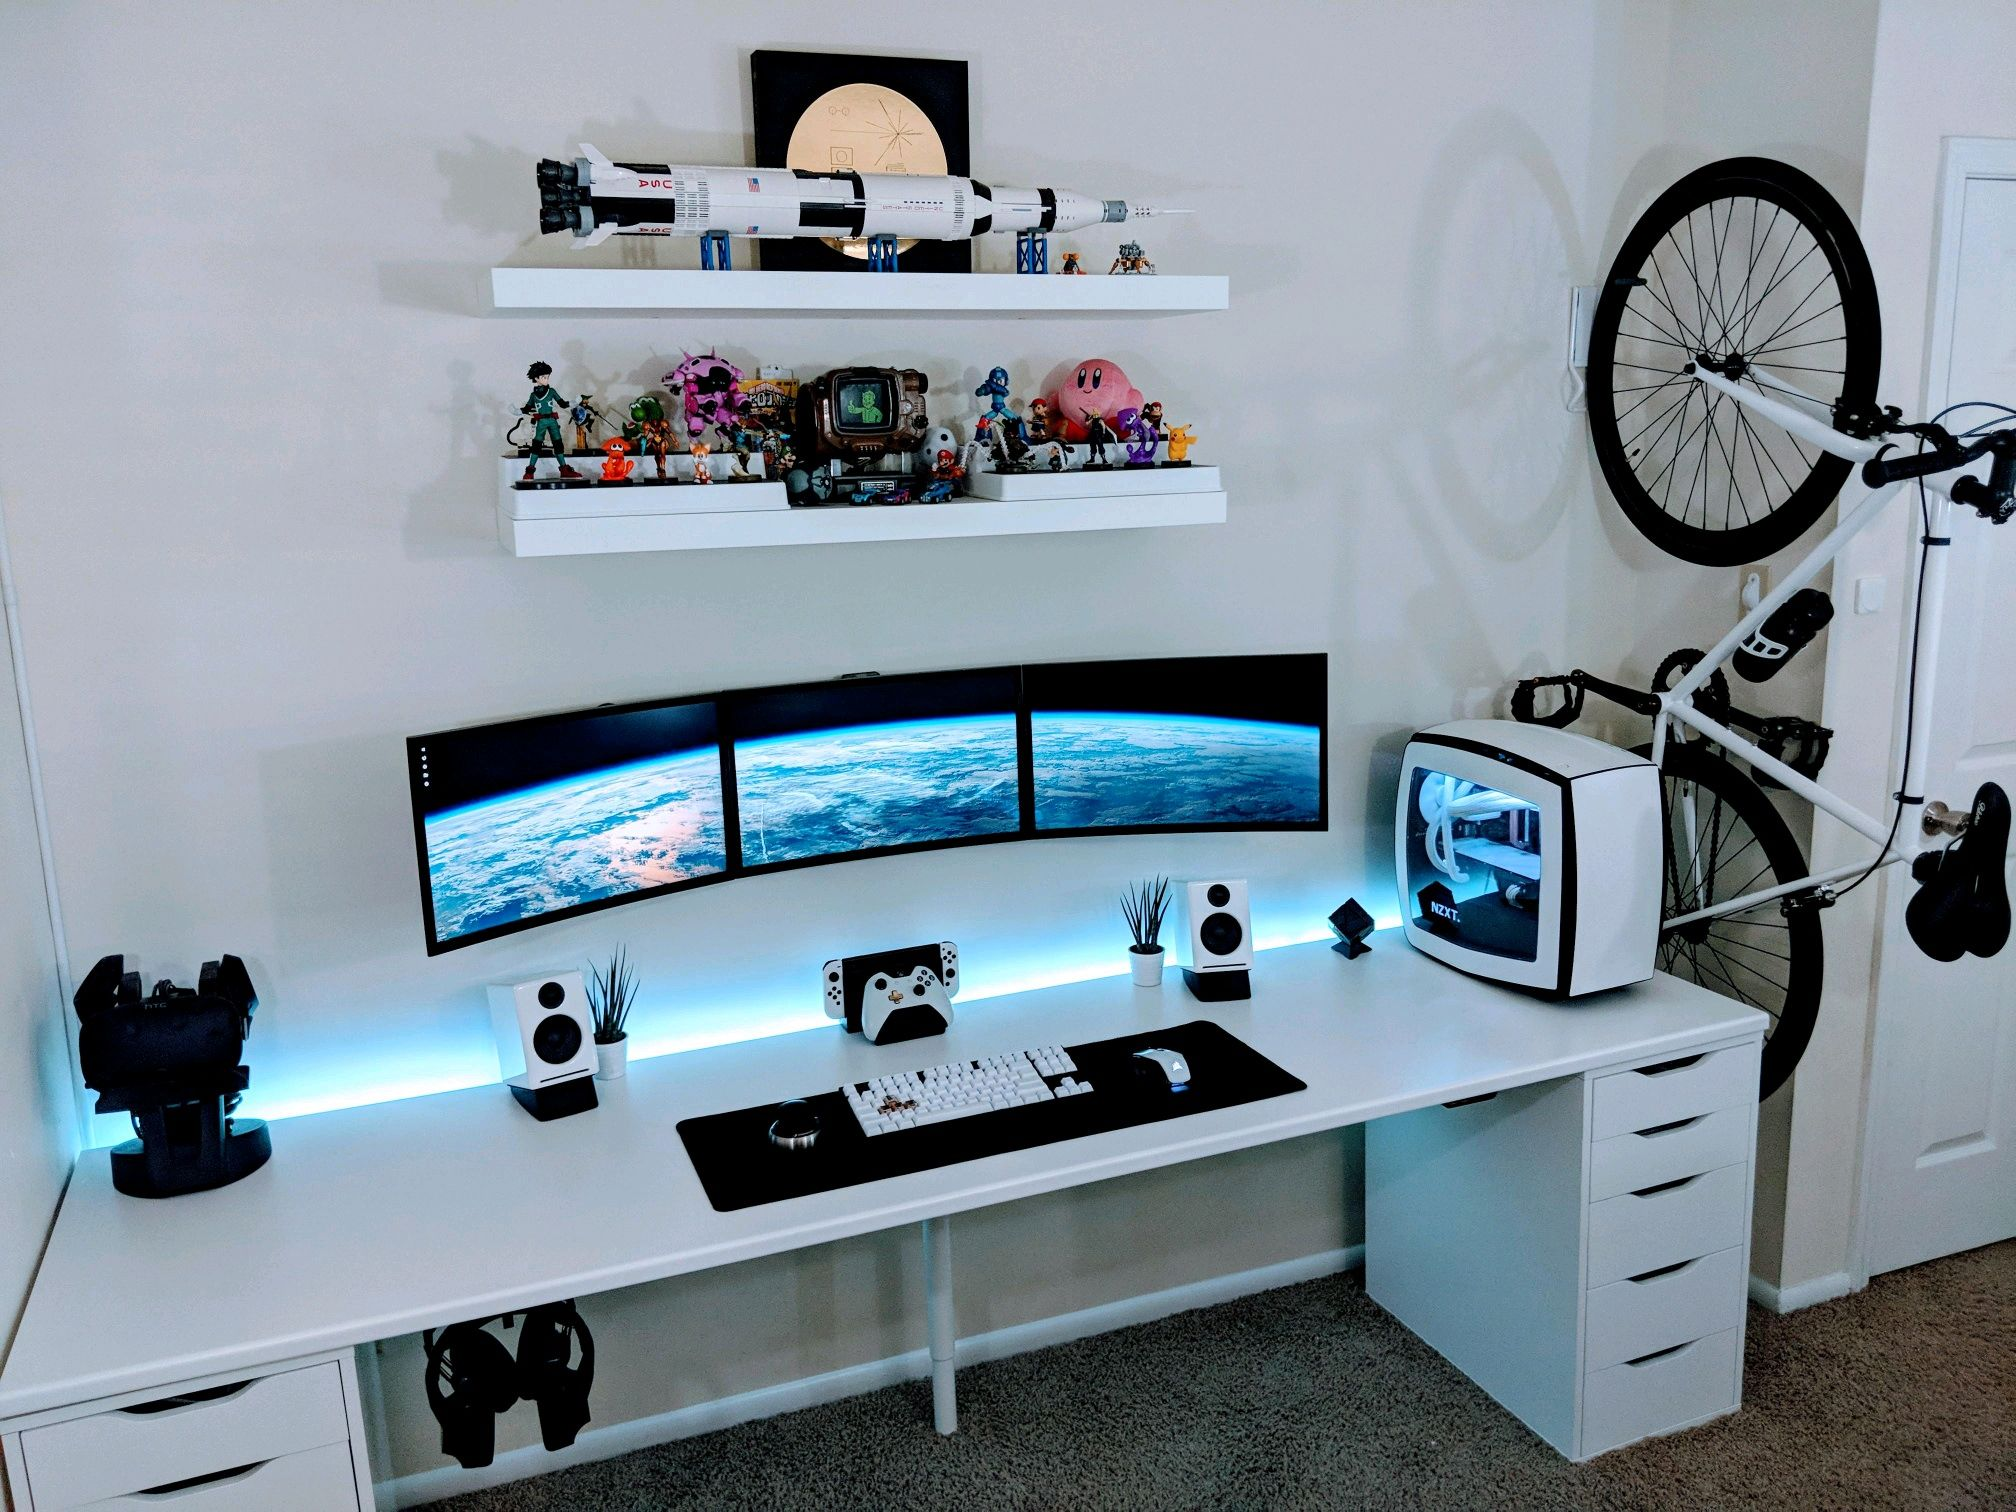 Finished building today home office setup game room - Home office setup ideas ...